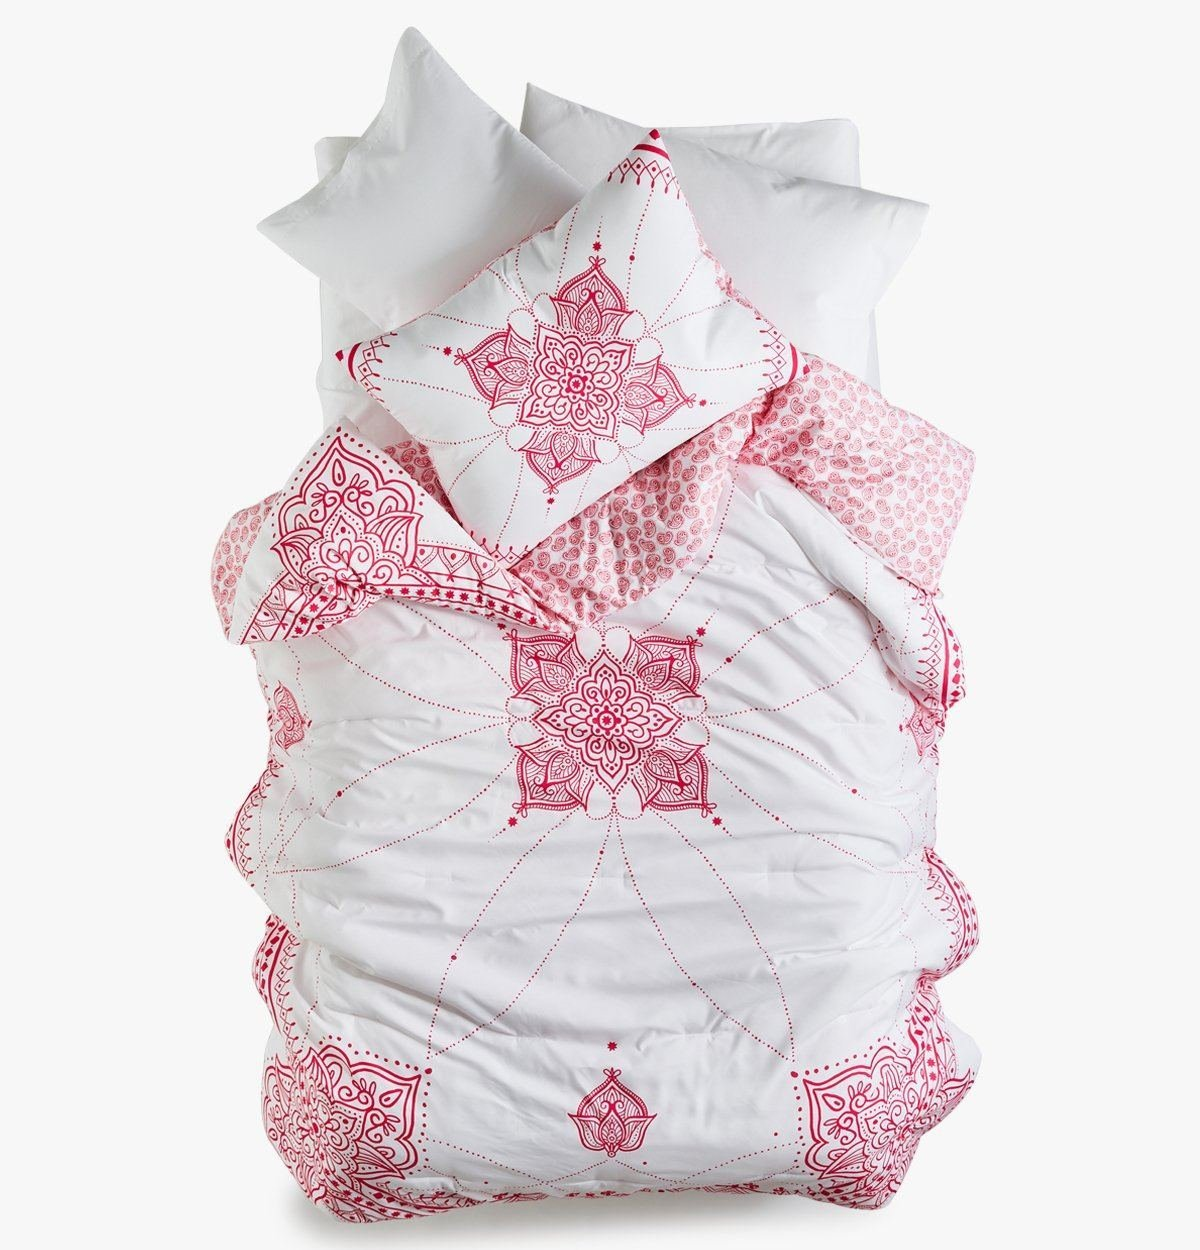 Roomify College Dorm Comforter - Pink Essence - Twin XL